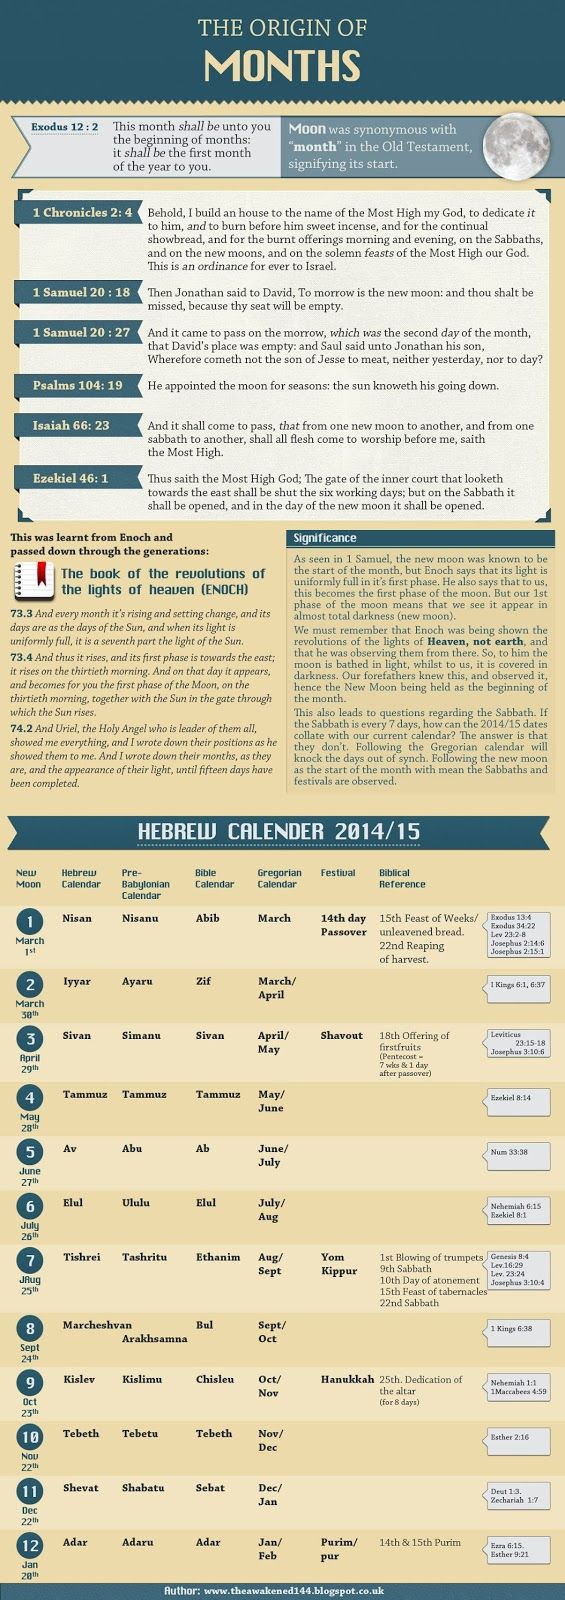 The Awakened: Hebrew Calendar 2014/15 - Origin of Months